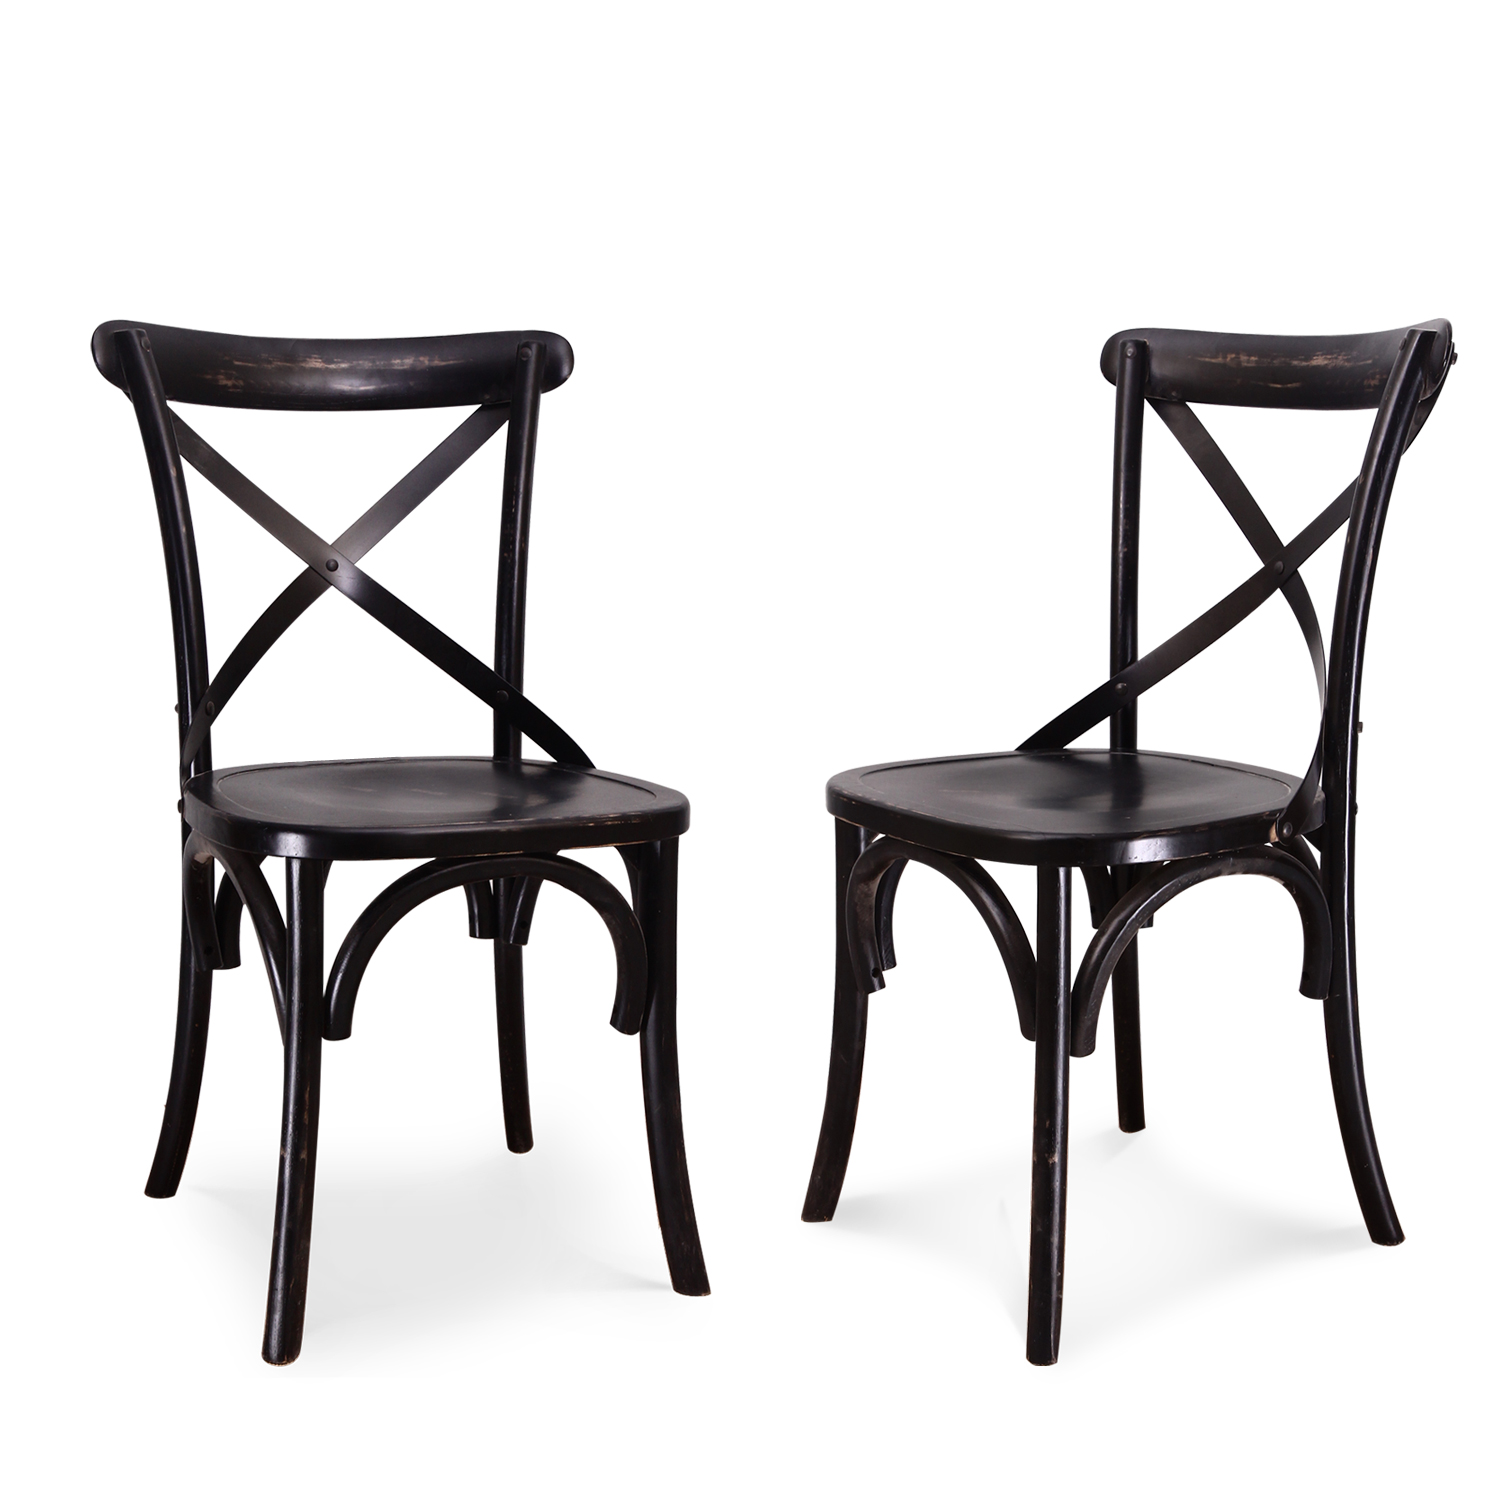 Adeco  CH0009  Elm Wood Rattan Antique Dining Chairs (Set of 2), Home Decor at Sears.com